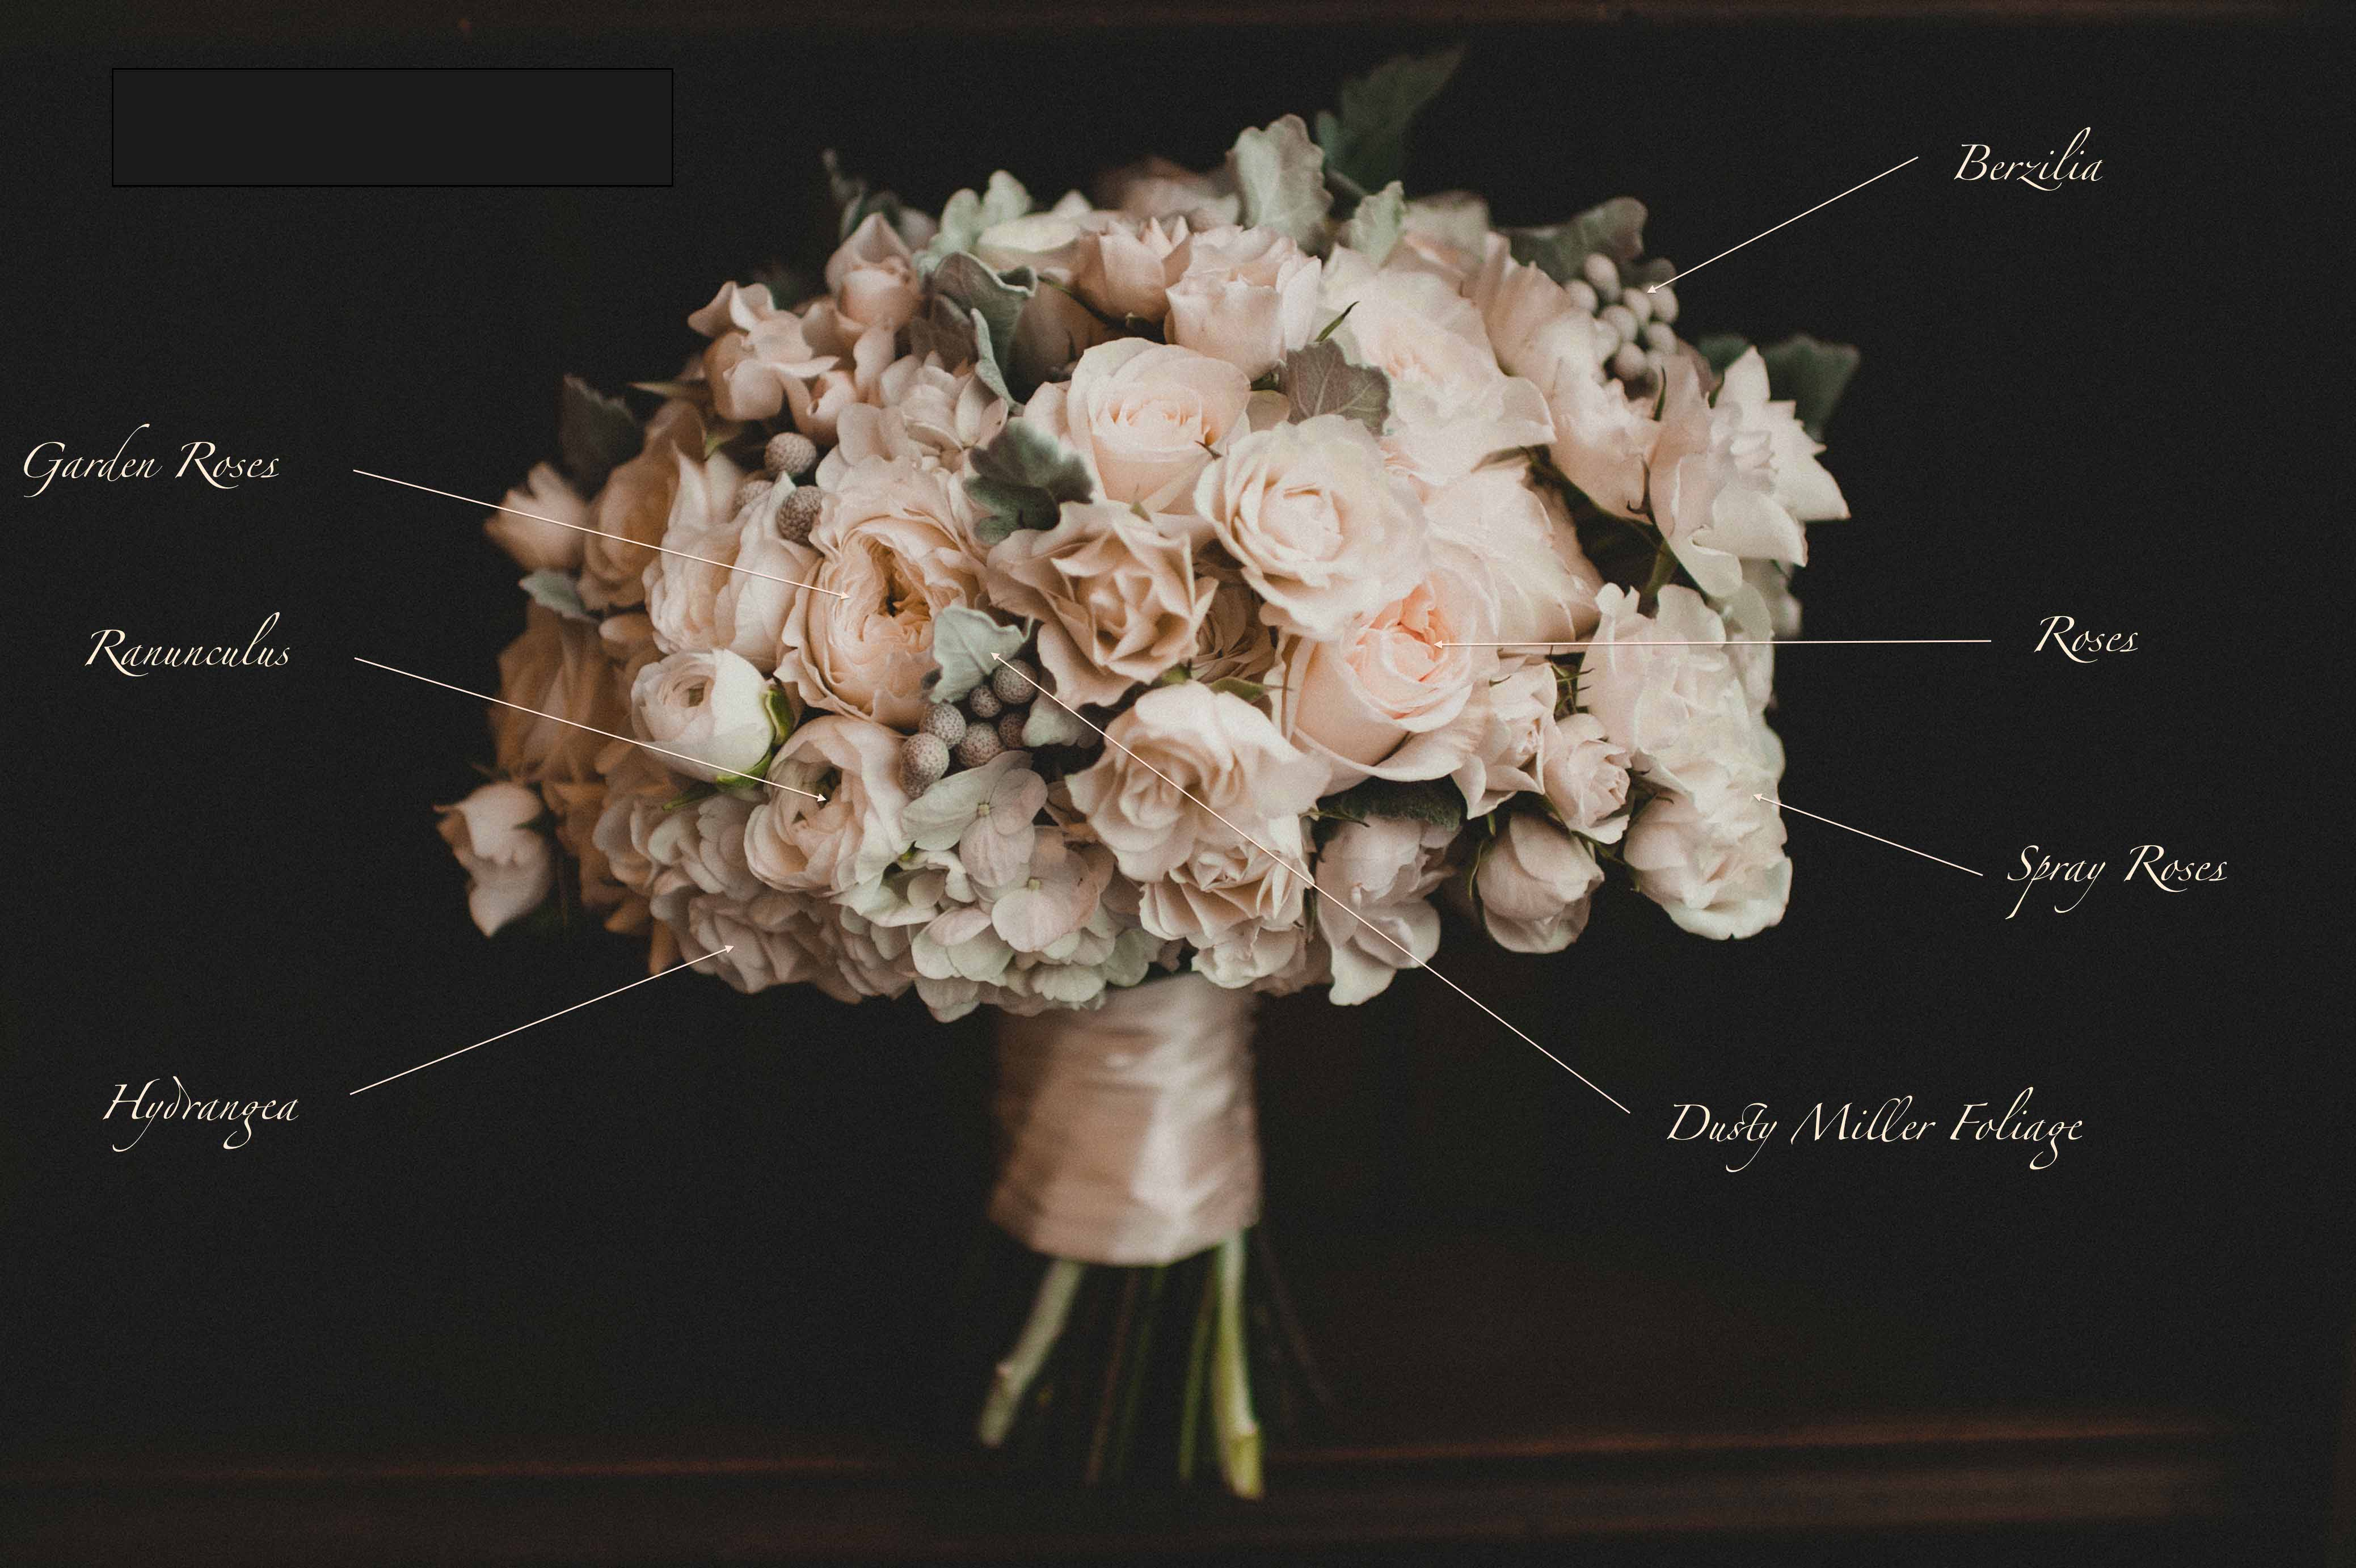 White and grey winter bridal bouquet recipe of white roses, spray roses, berzillia, ranunculus, Dusty Miller - Bridal Bouquet Pricing by Flora Nova Design